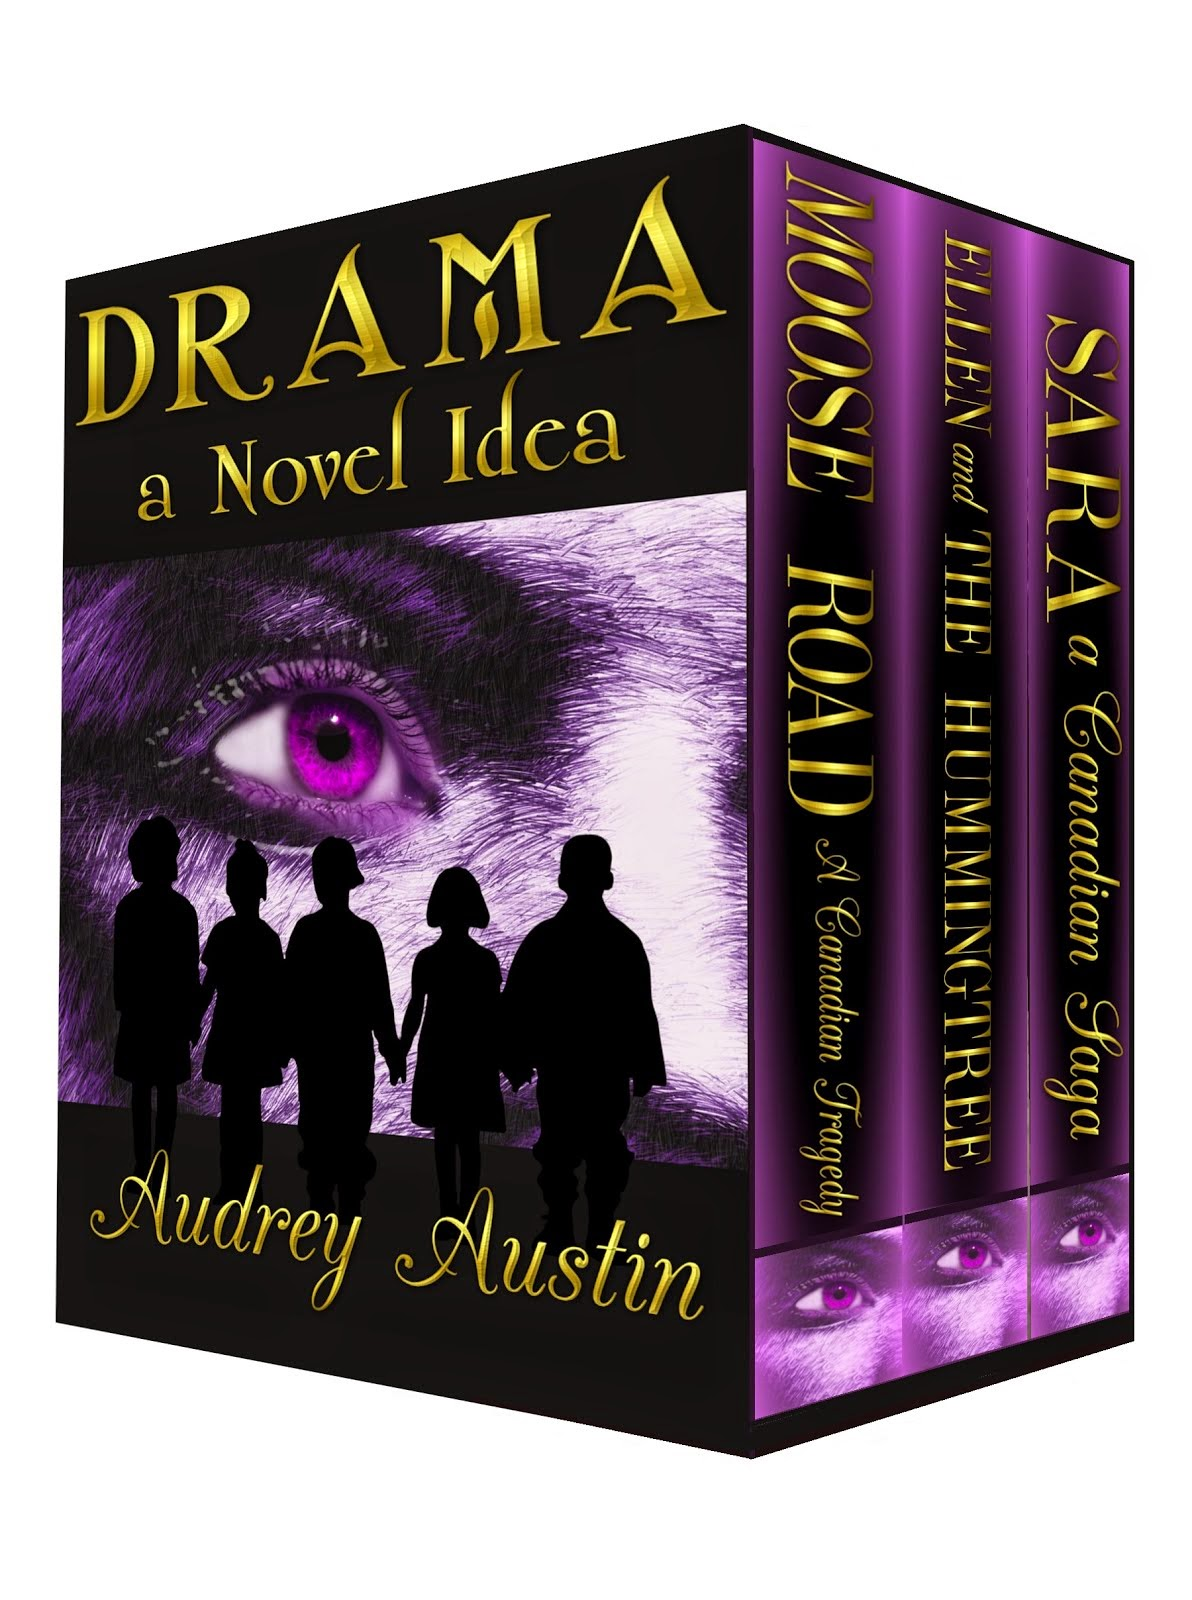 DRAMA - a Novel Idea